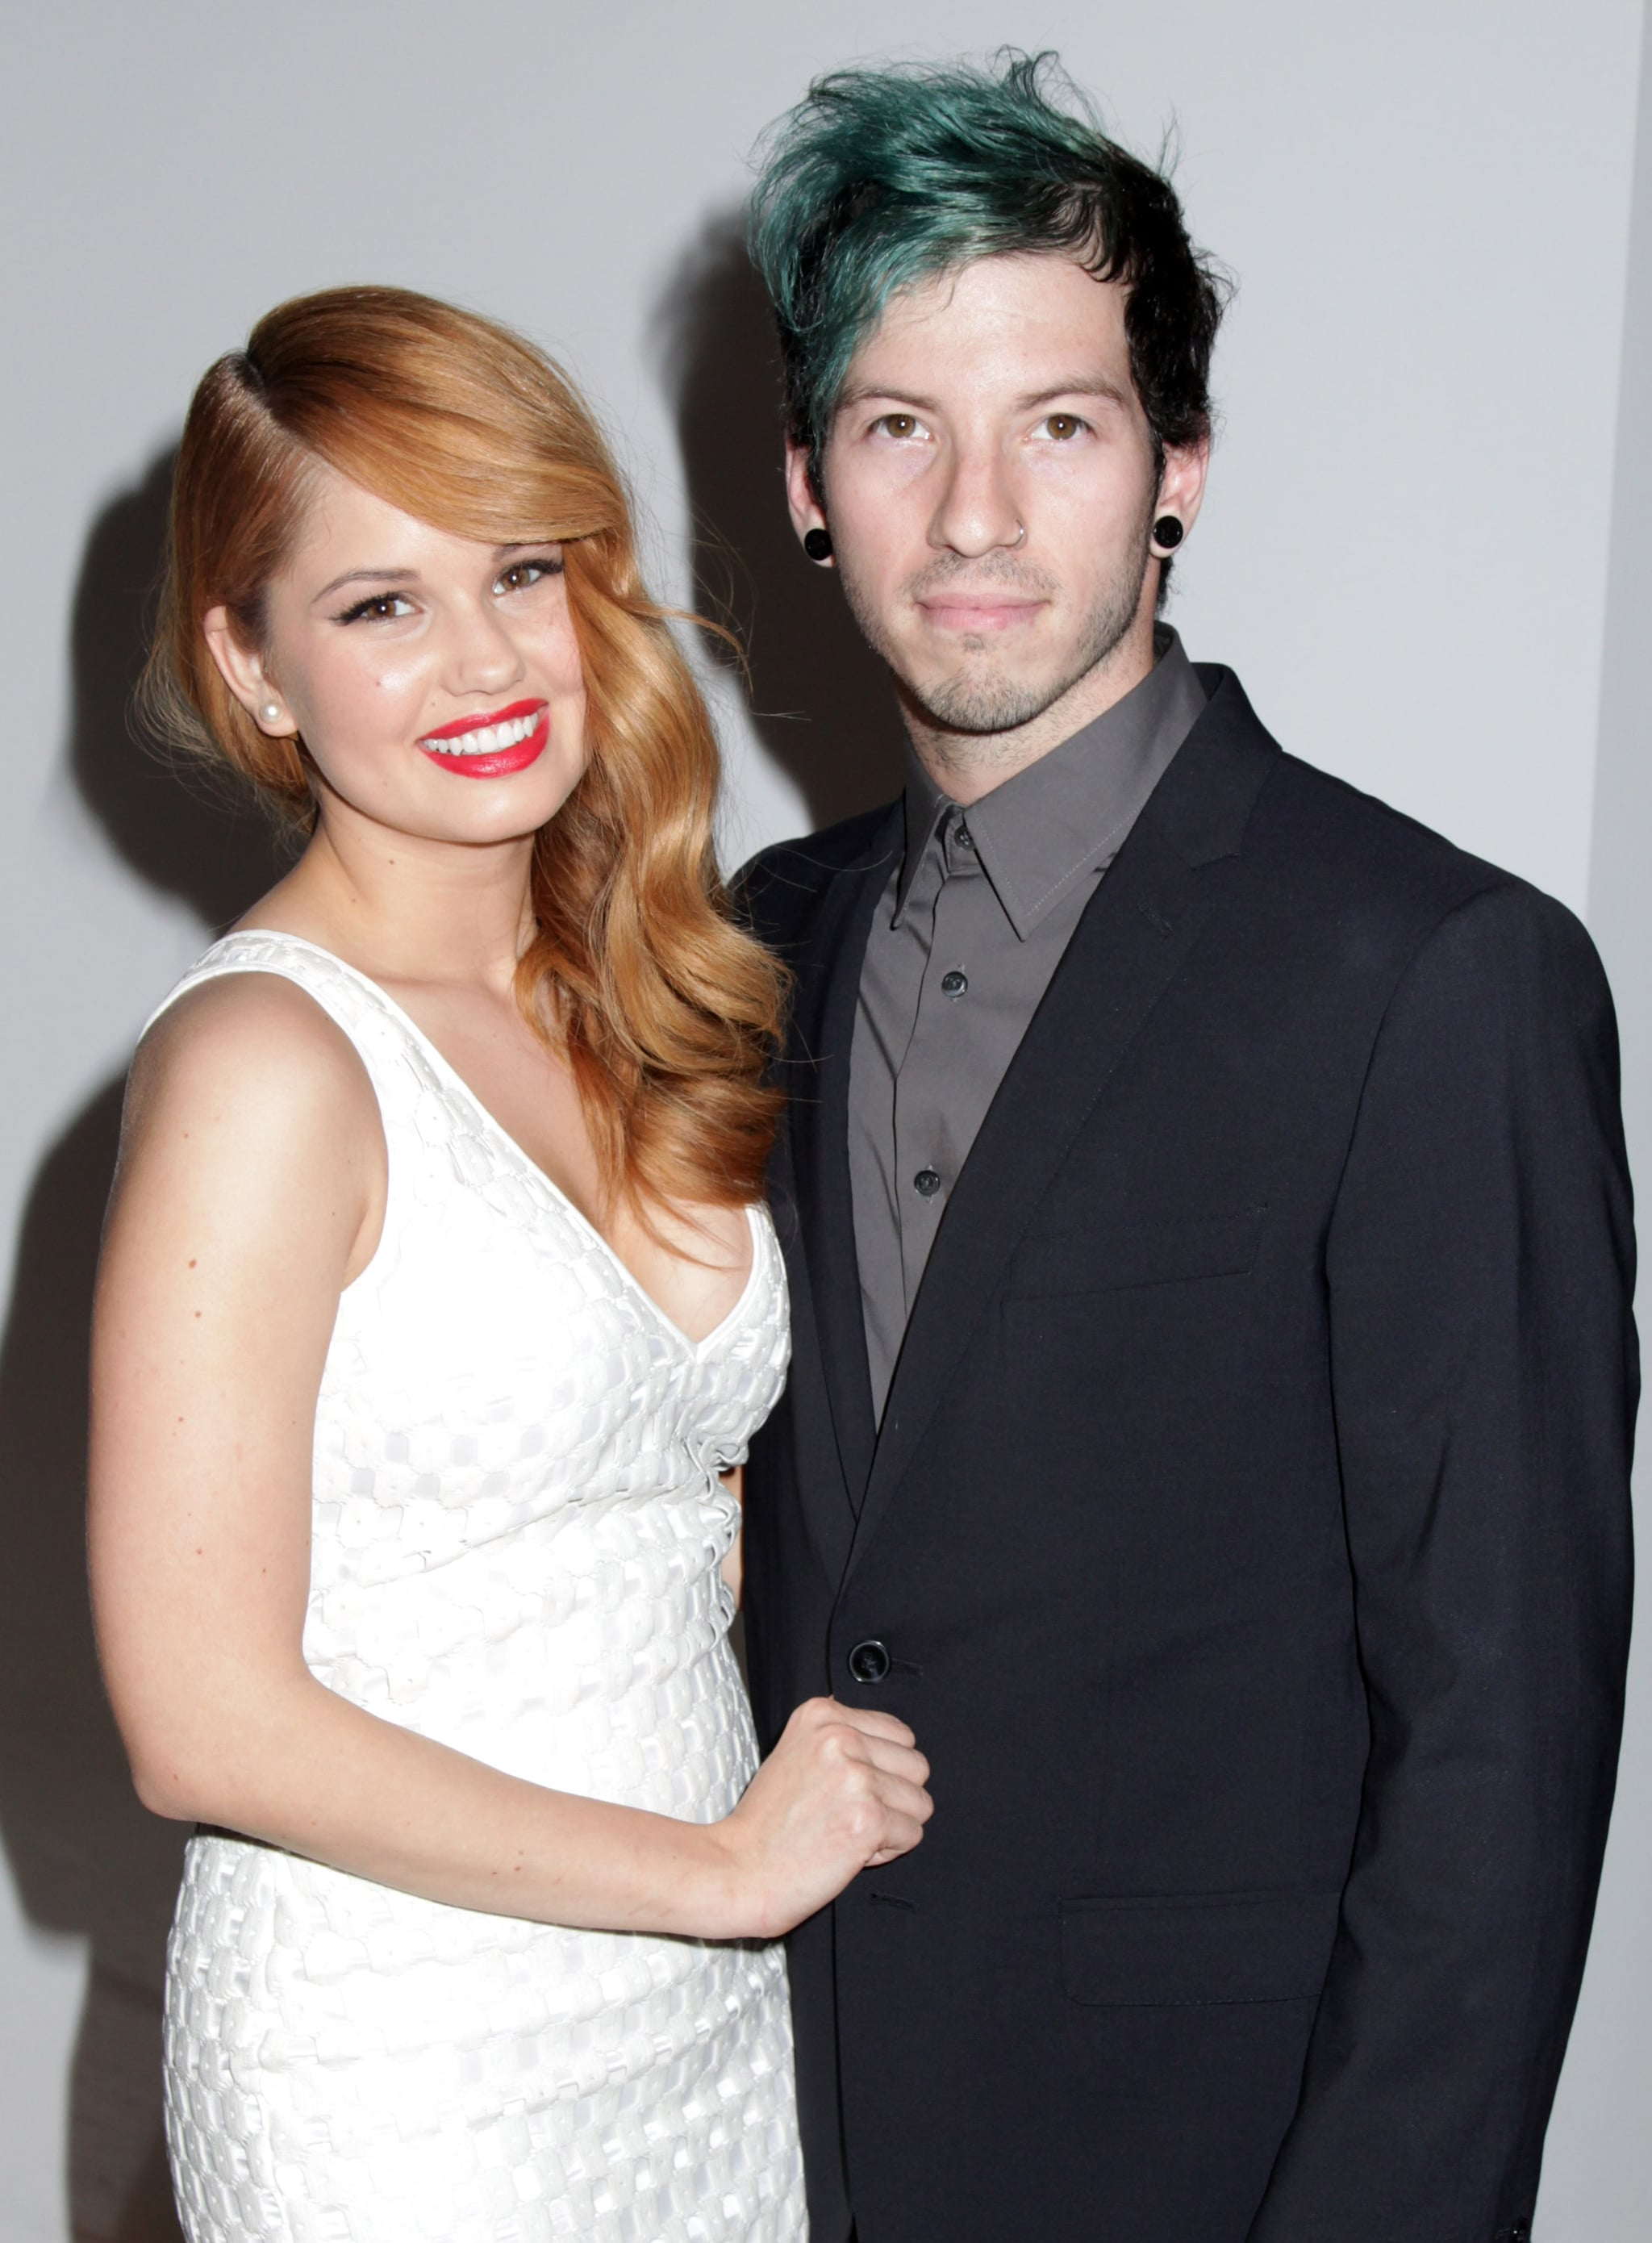 BEVERLY HILLS, CA - MARCH 18:  Actress Debby Ryan and musician Josh Dun arriving at the 2nd Annual Norma Jean Gala 2014 at The Paley Centre for Media on March 18, 2014 in Beverly Hills, California.  (Photo by Paul Redmond/WireImage)